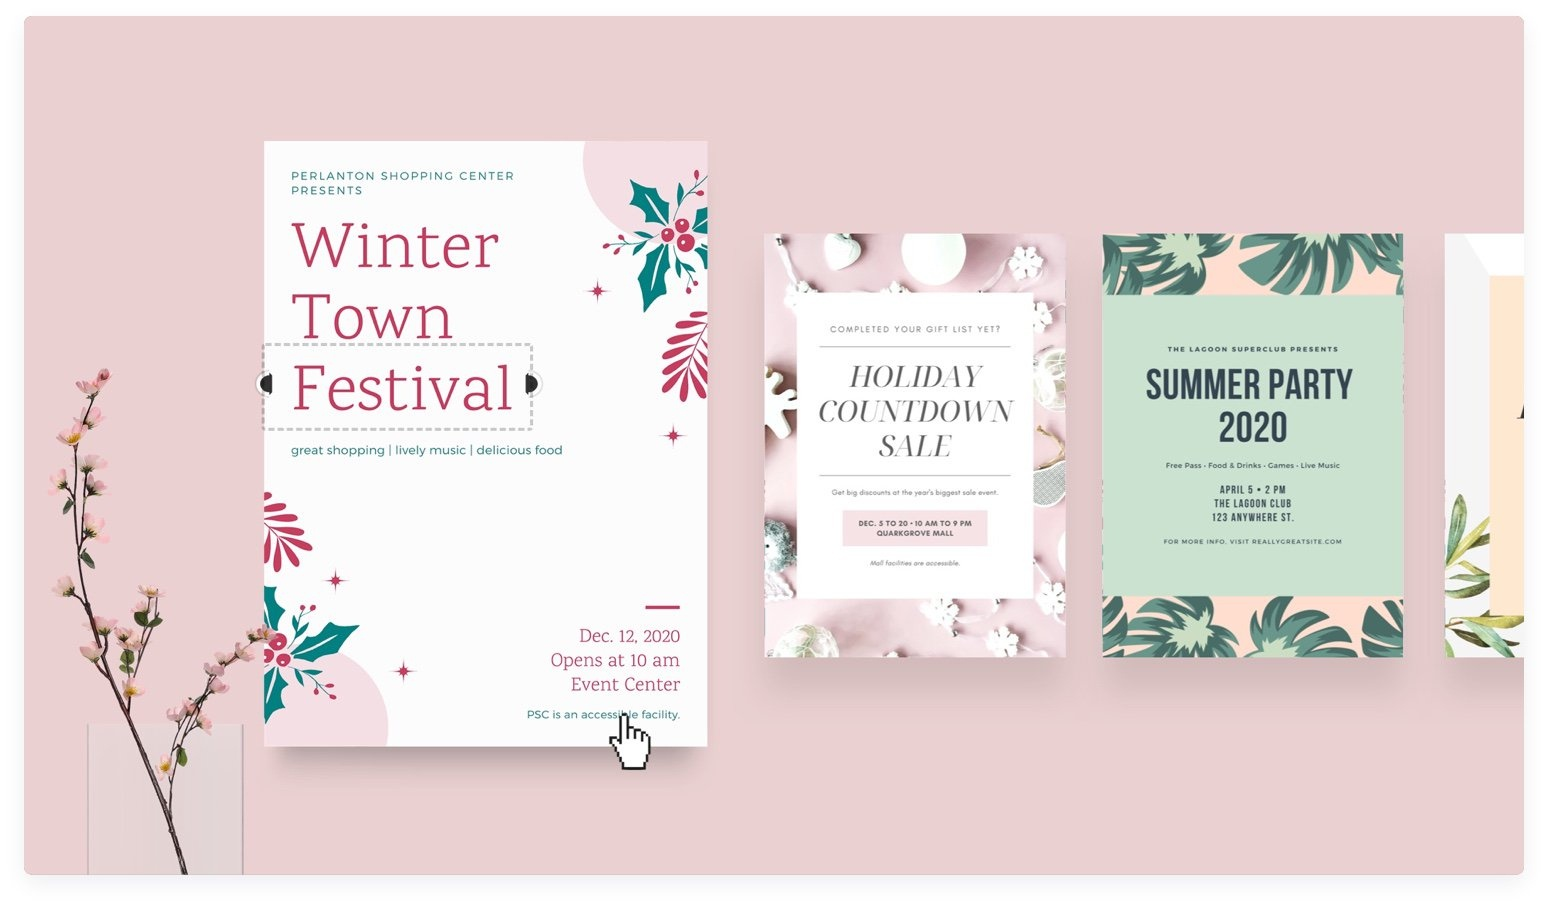 Free Online Flyer Maker: Design Custom Flyers With Canva - Design Your Own Poster Free Printable